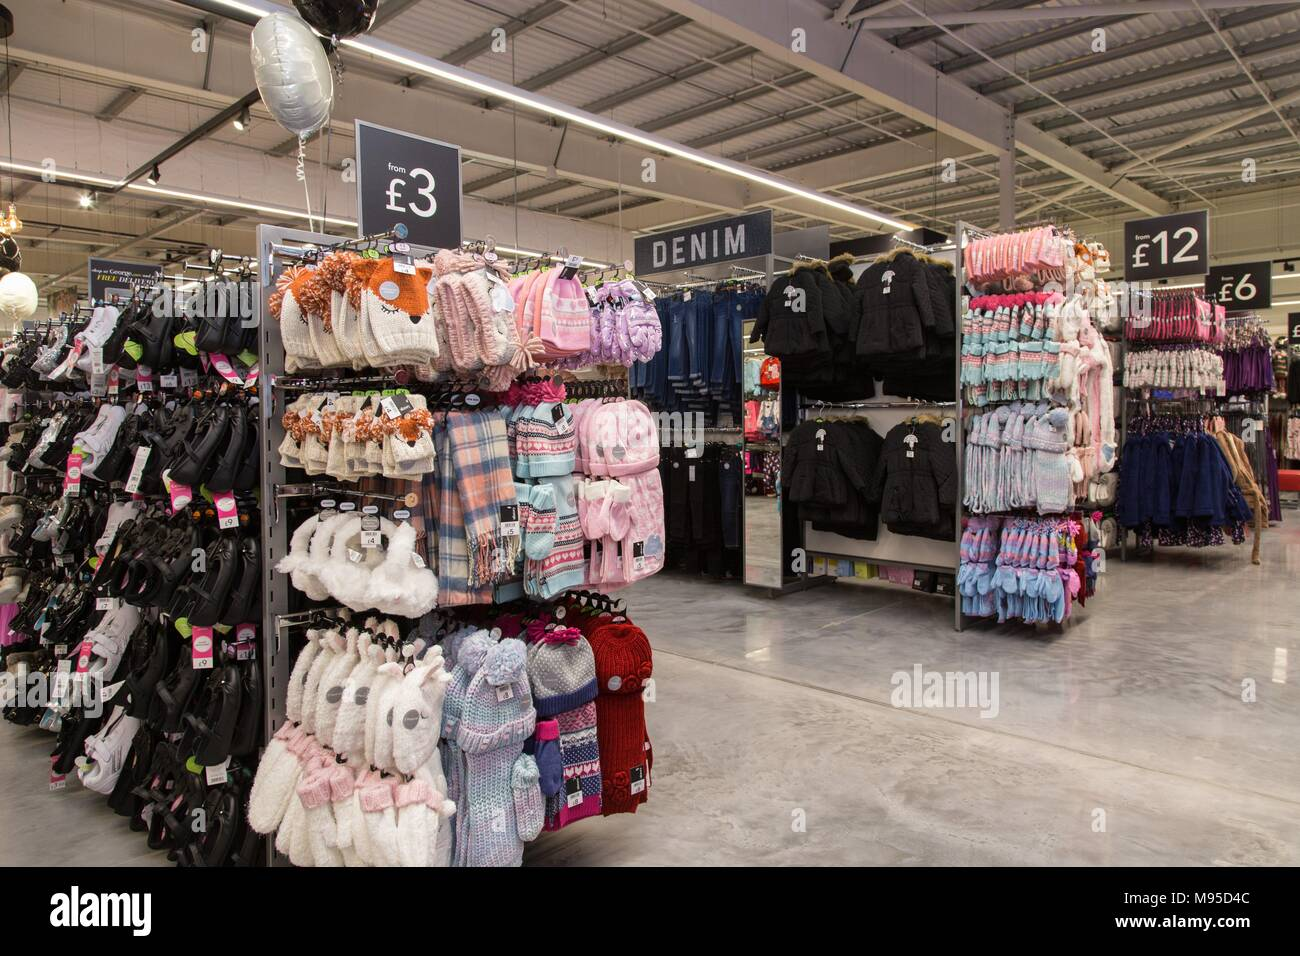 Clothing on sale in the George section of an Asda supermarket. - Stock Image